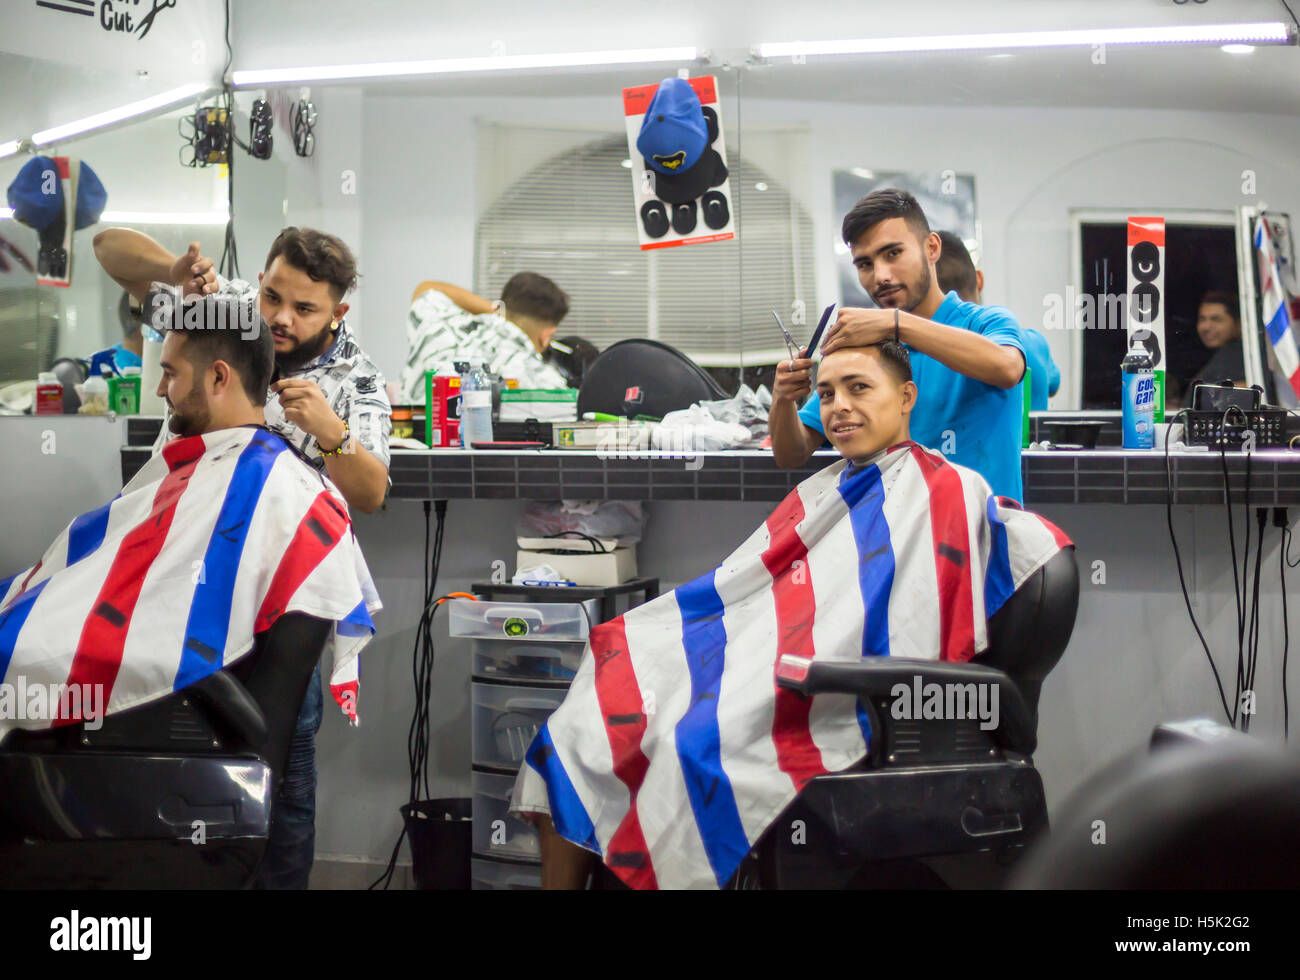 Nogales, Sonora Mexico - Barber shop. Stock Photo